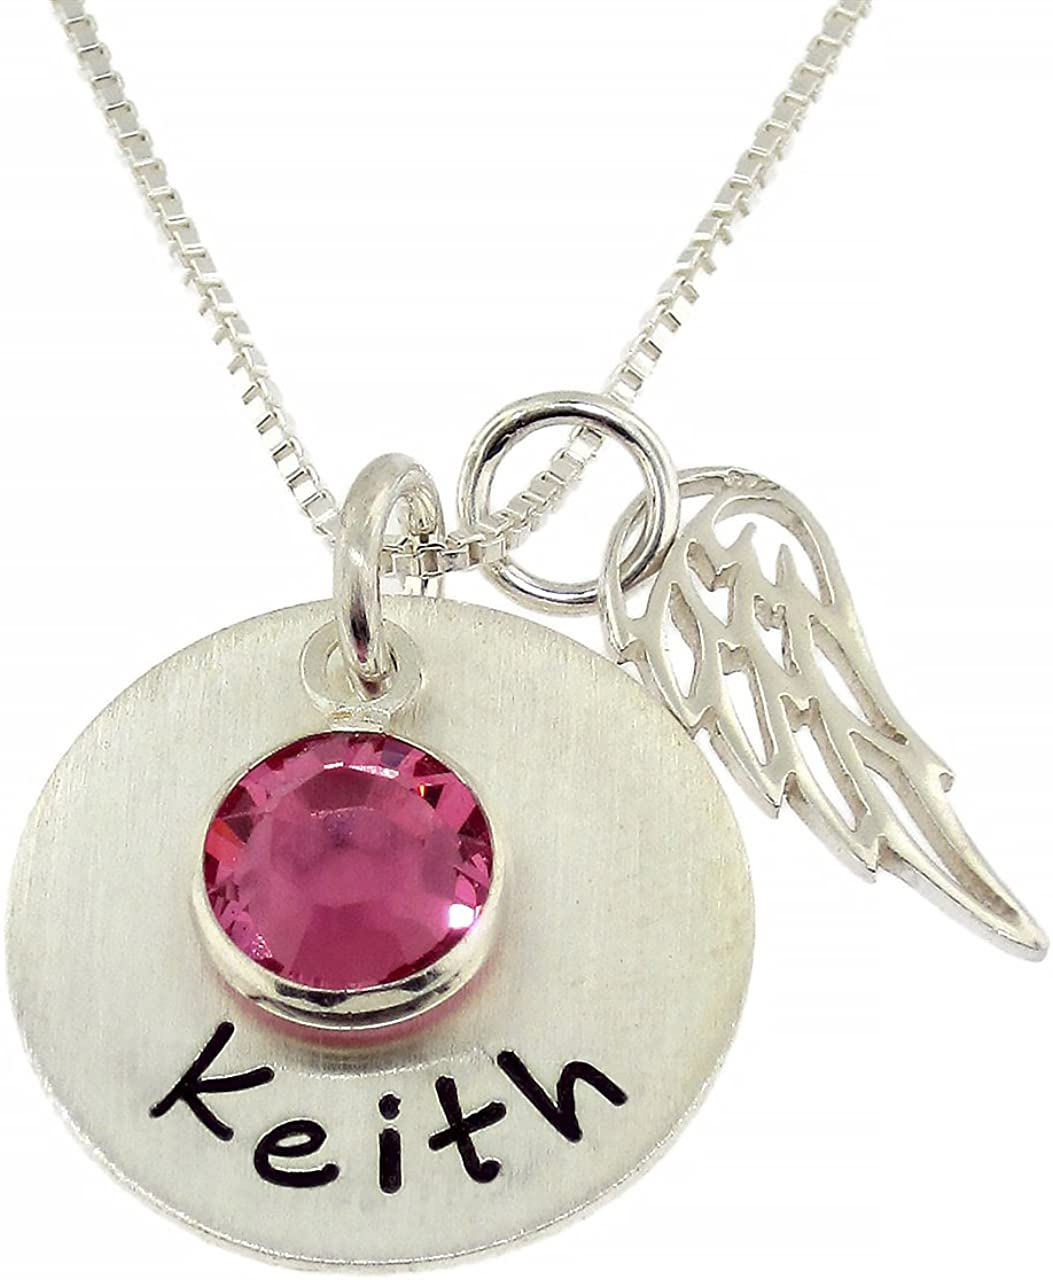 My Angel, My Love Personalized Necklace. Customize with the Name, Word or Date of Your Choice. Includes Swarovski Birthstone, 925 Angel Wings and Chain. Gifts for Her, Mother, Wife, Girlfriend